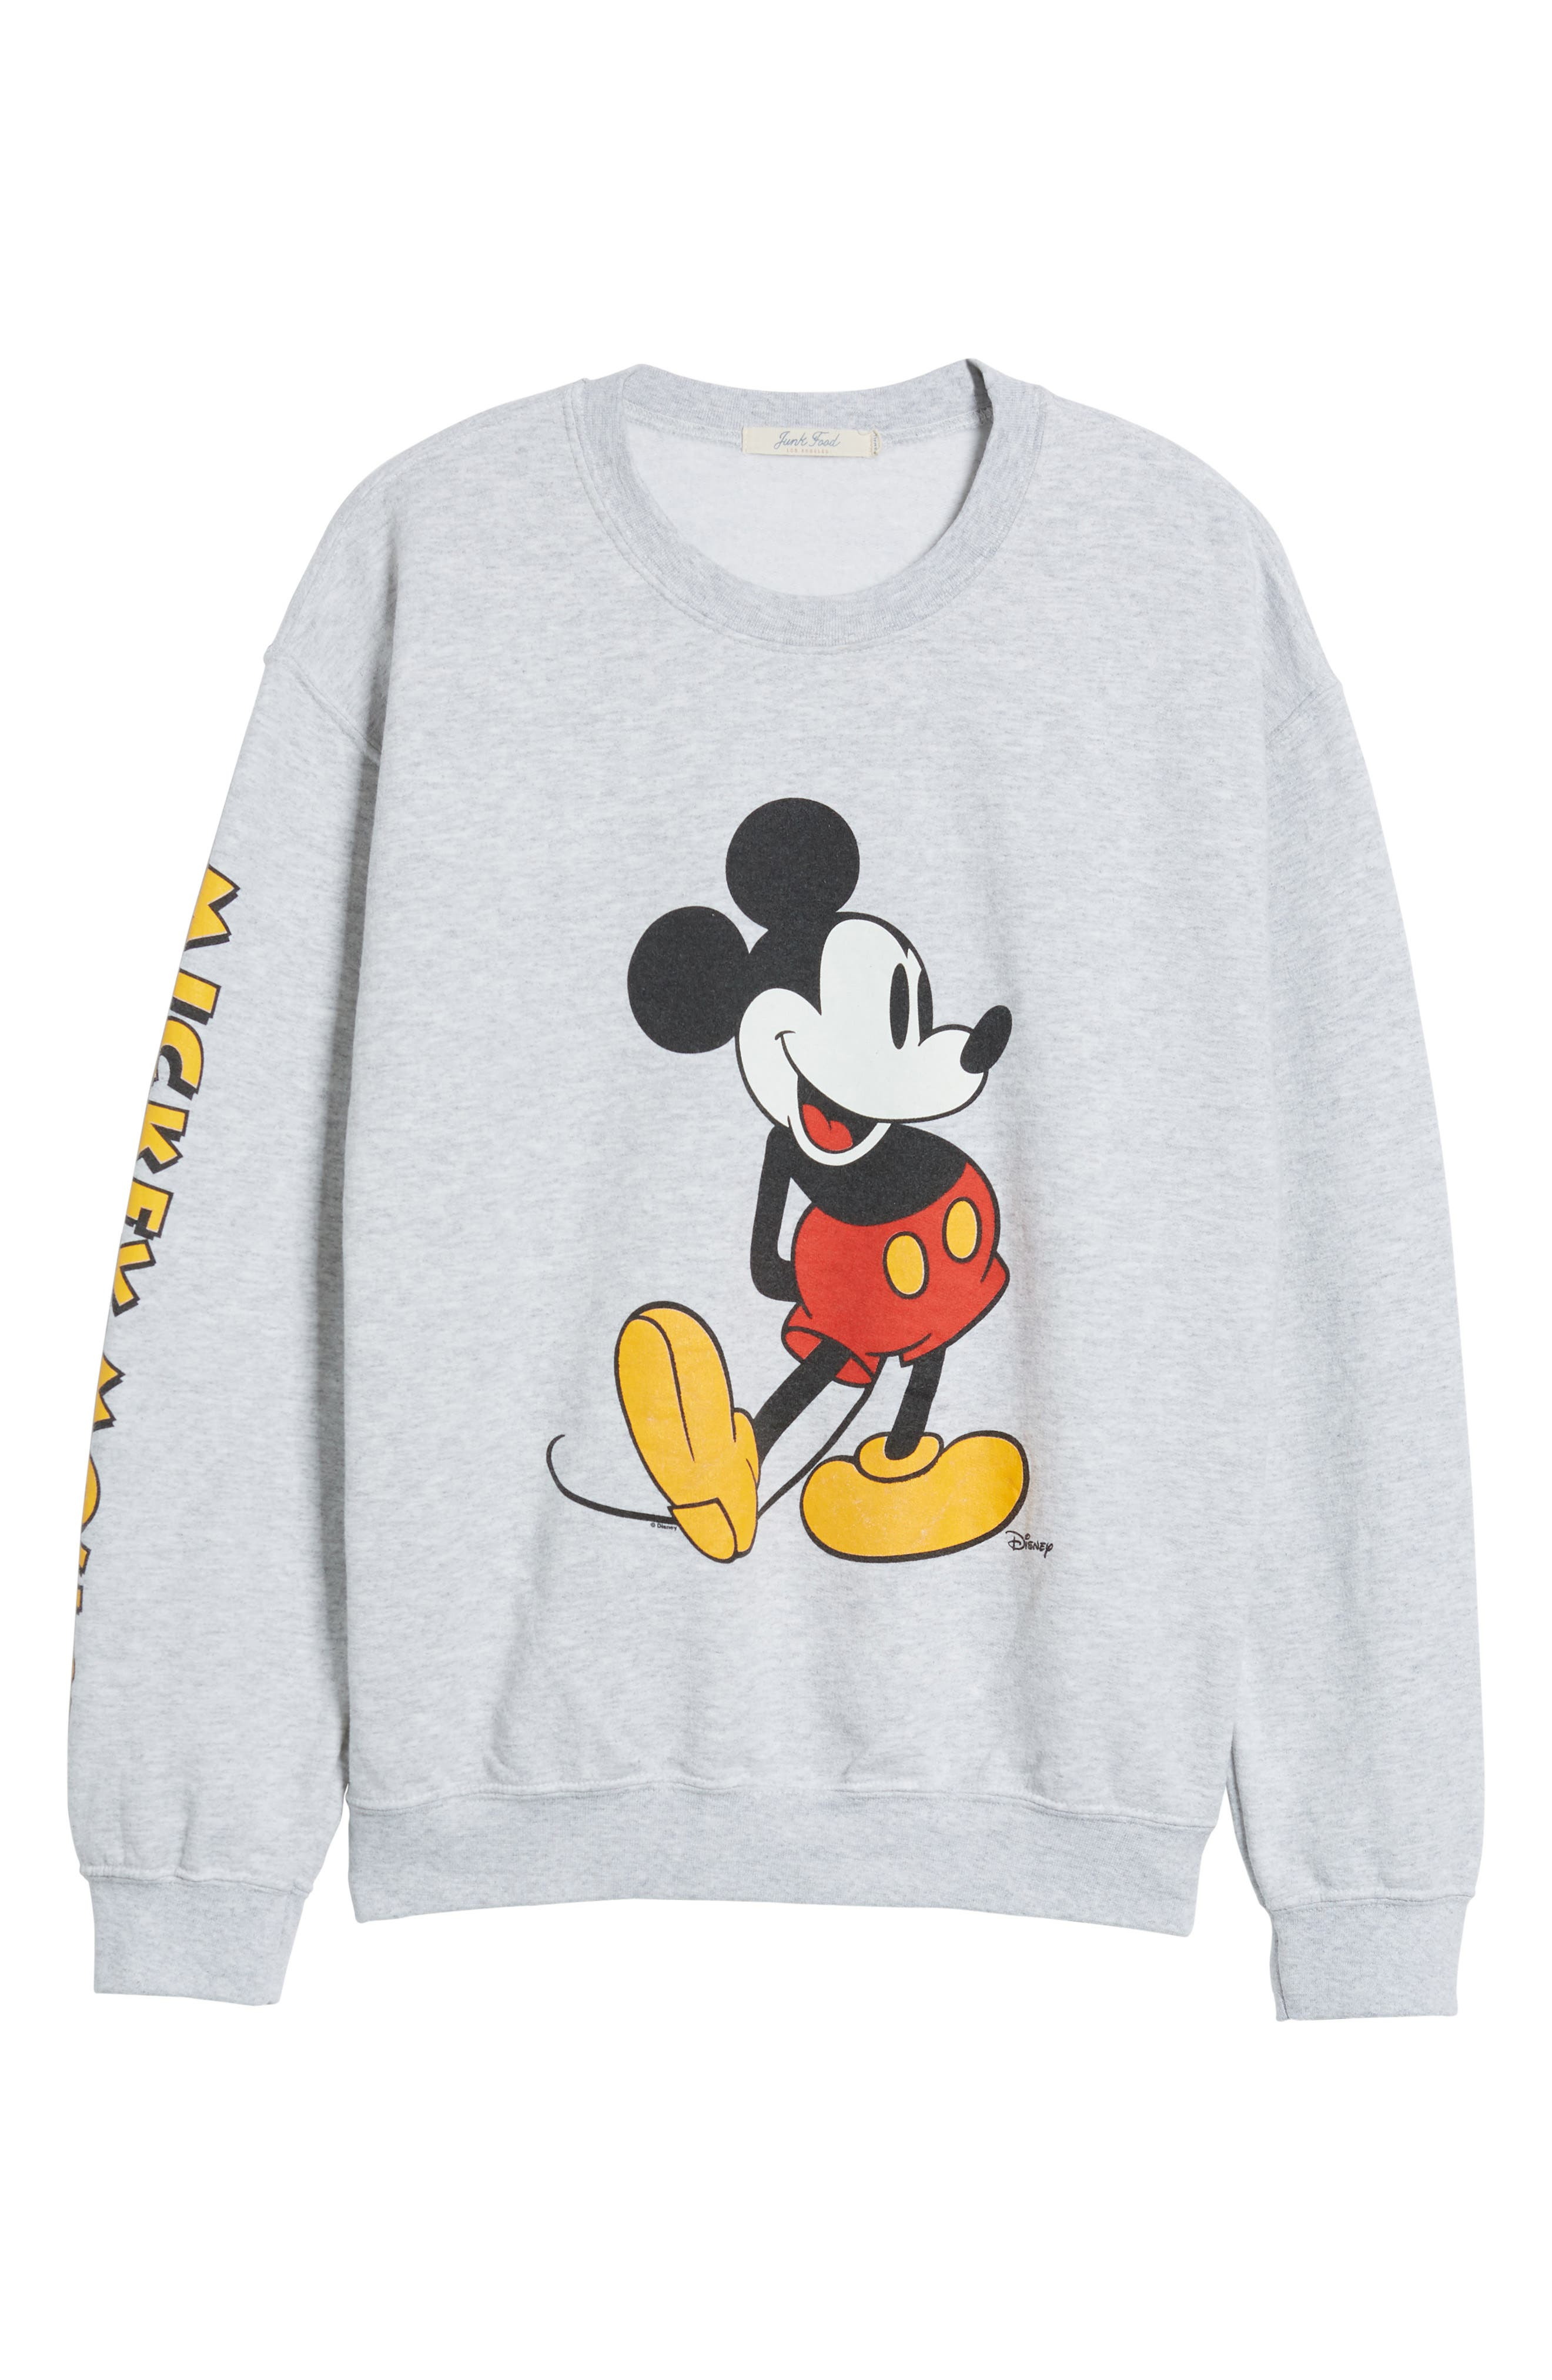 Mickey Mouse Oversize Sweatshirt,                             Alternate thumbnail 7, color,                             027